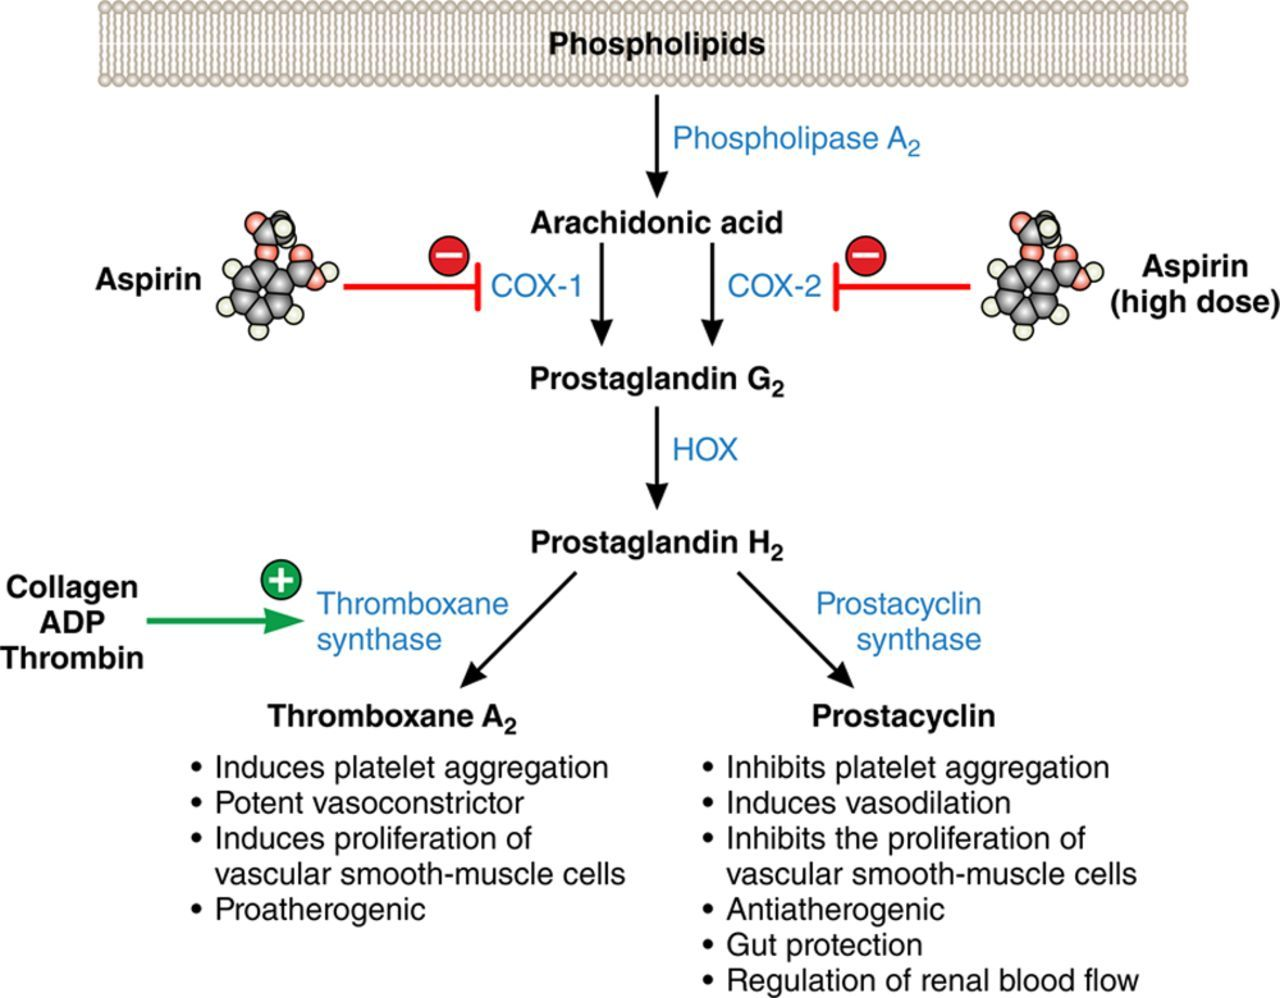 image result for aspirin mechanism of action pharmacology pharmacy line chart ms  [ 1280 x 998 Pixel ]